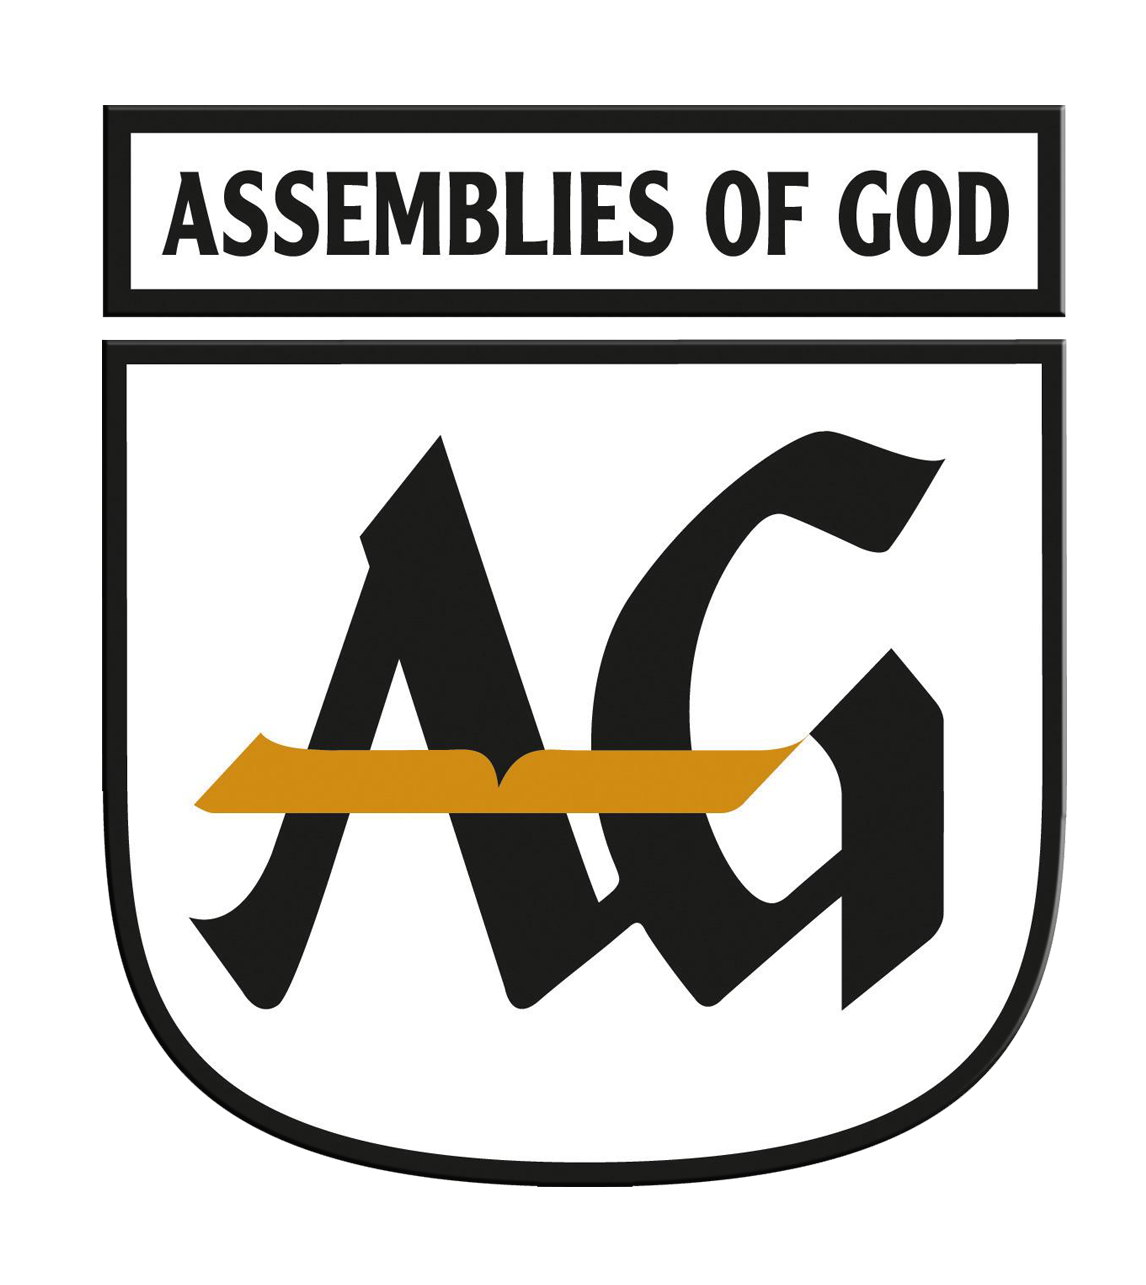 Assemblies of god png. Newsletters assembly